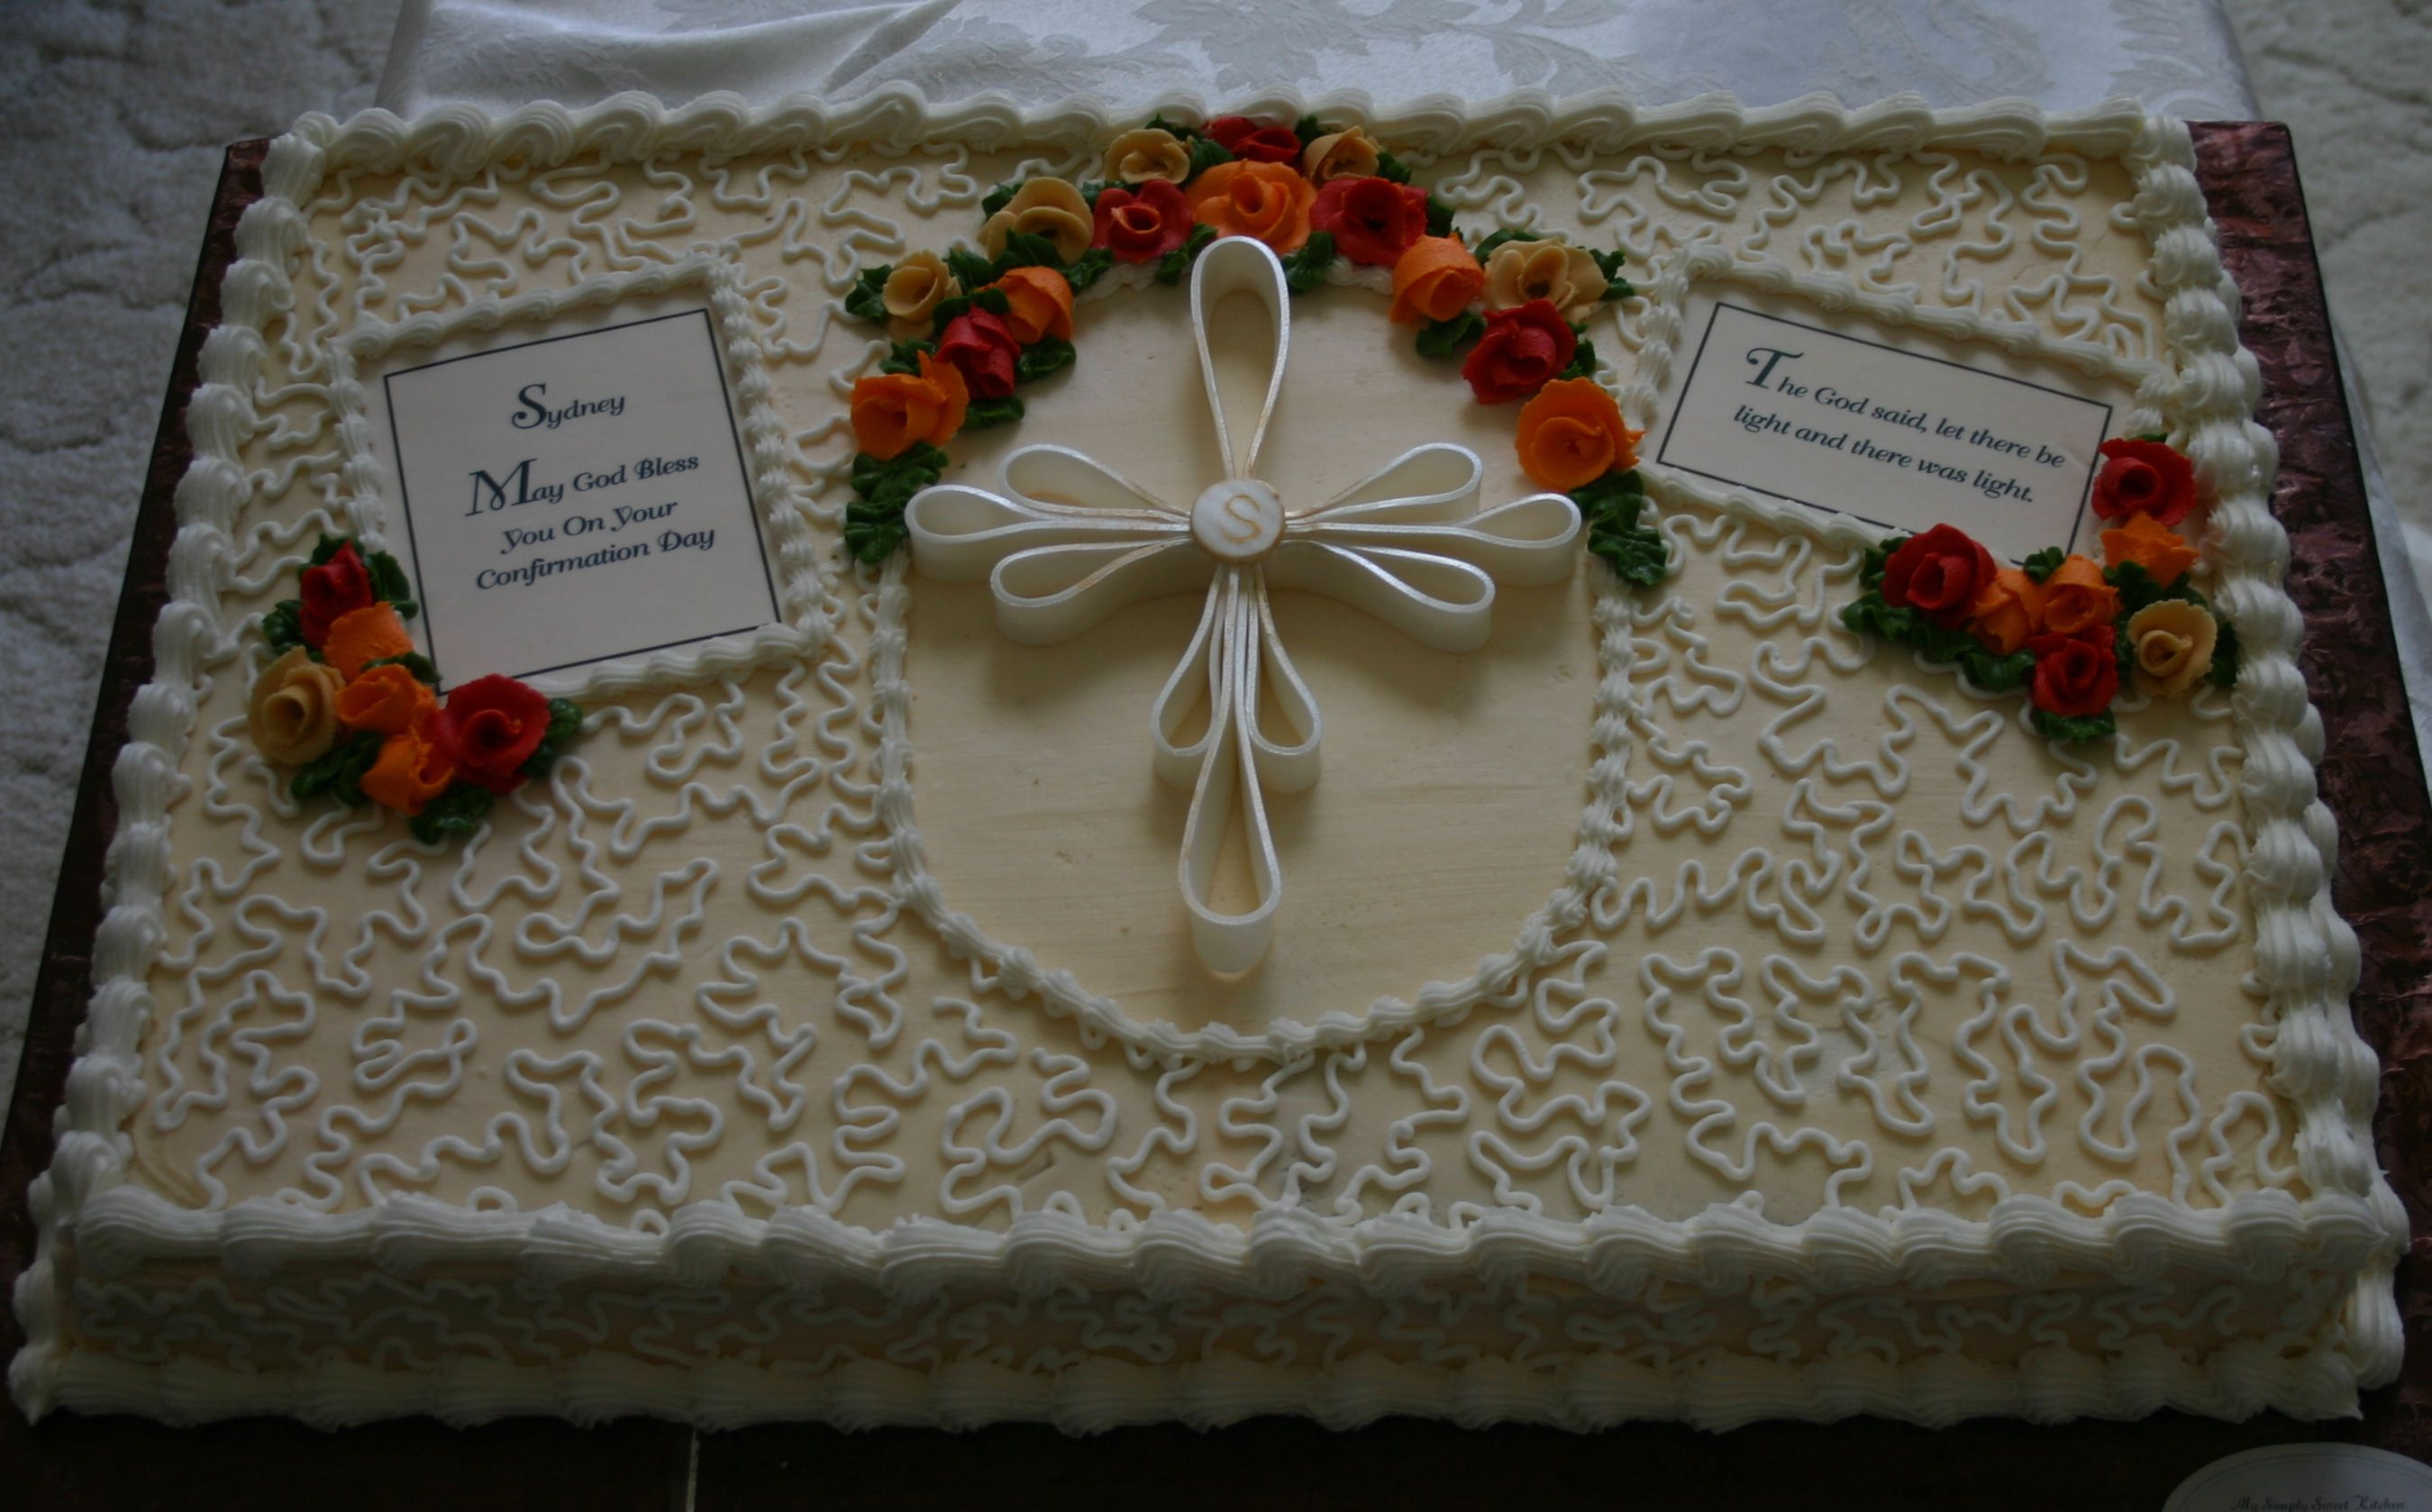 Confirmation Cake | Cake Decorating | Confirmation cakes